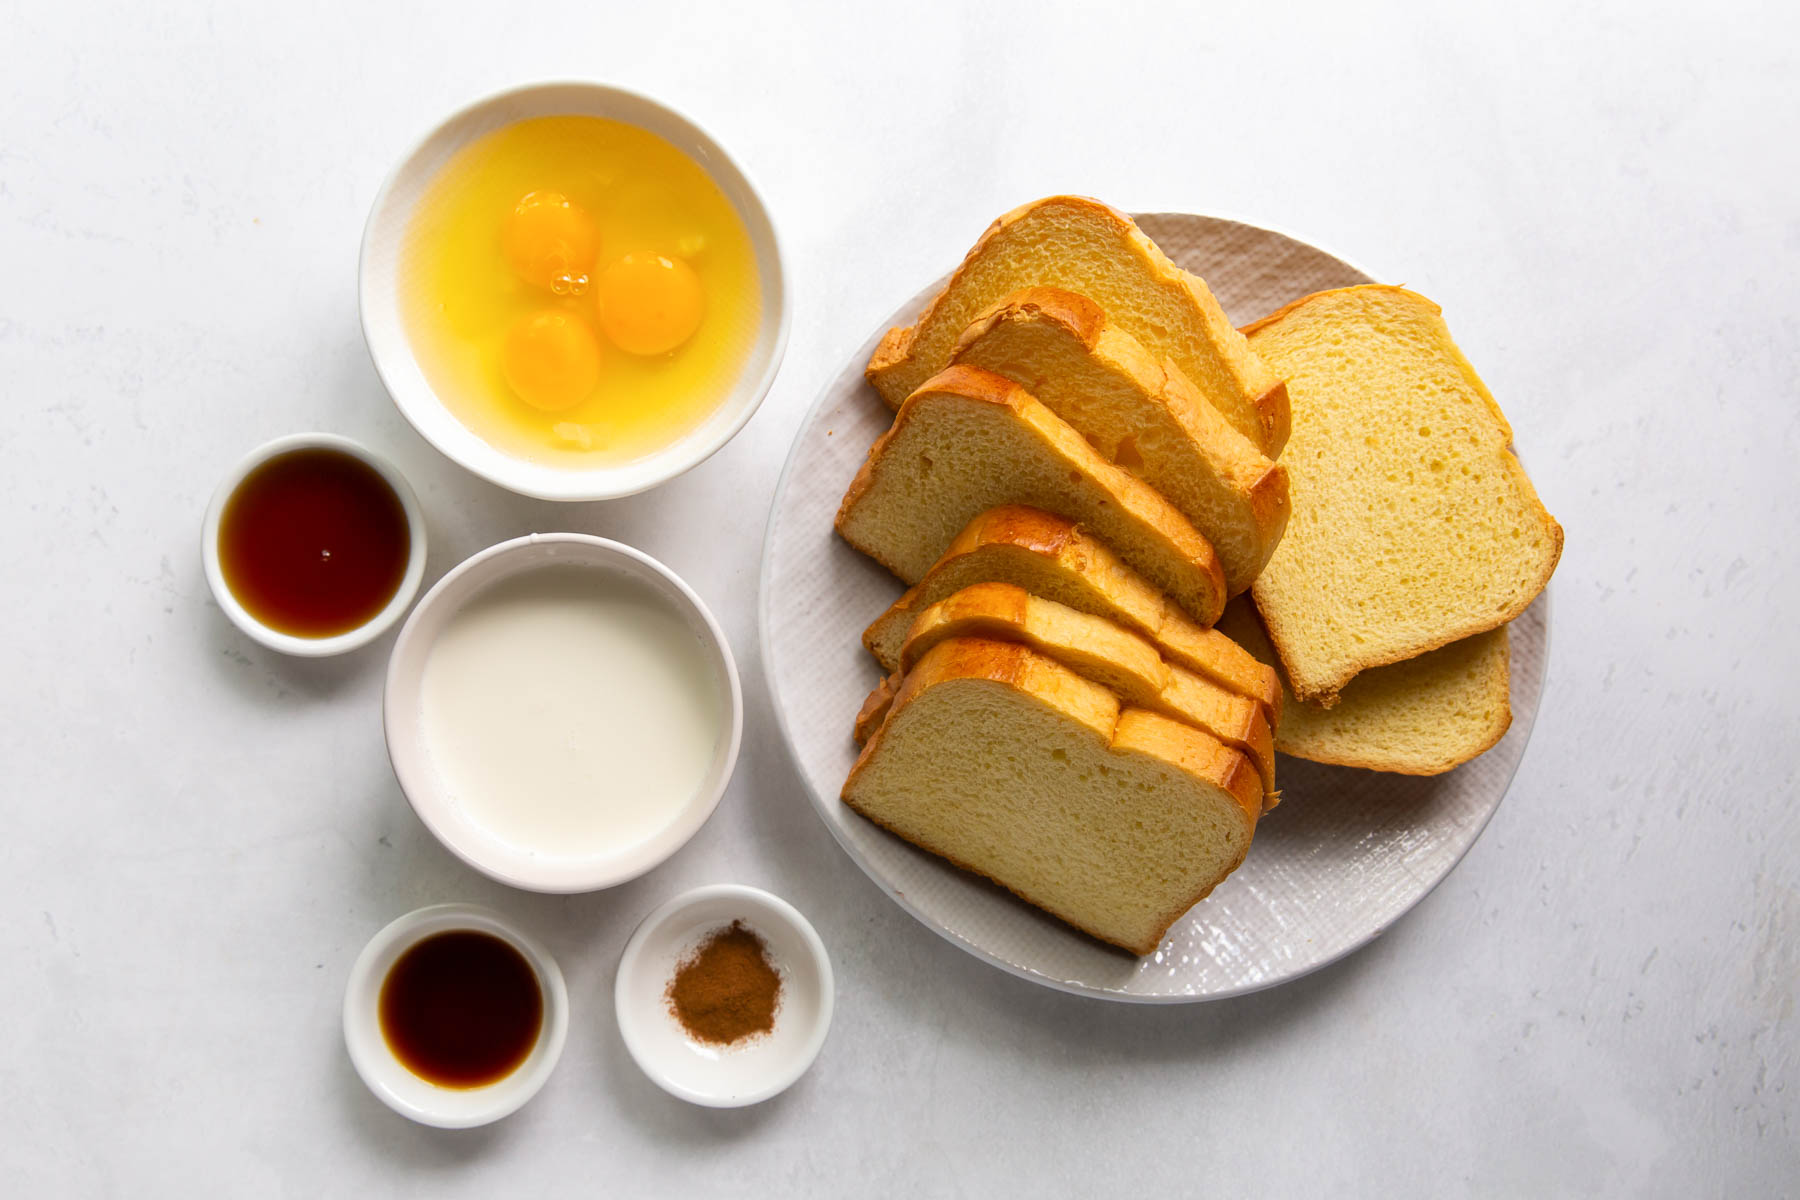 ingredients for french toast recipe